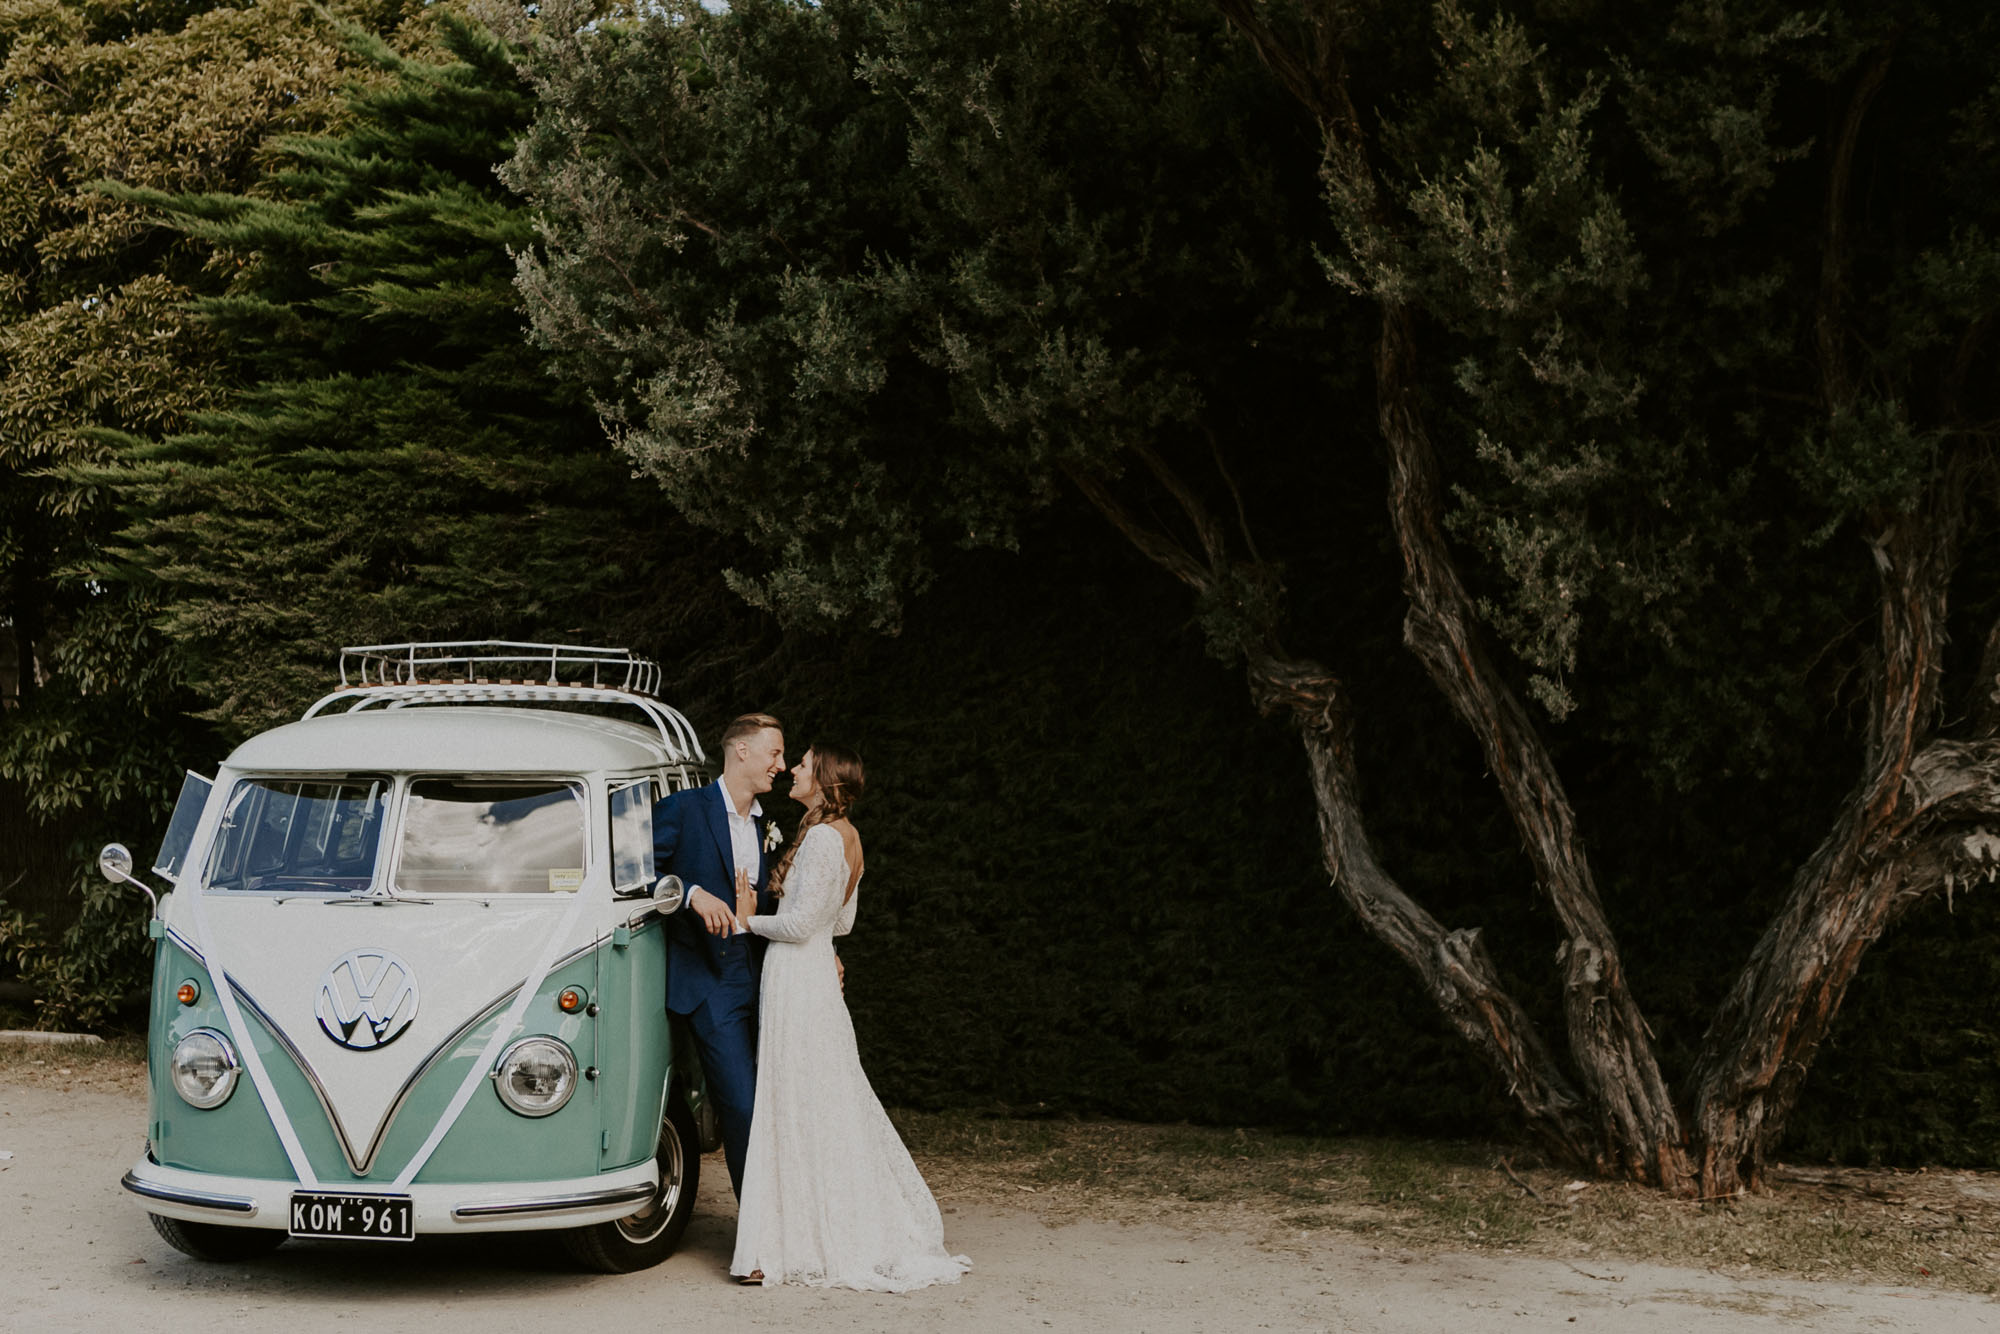 Teodora Tinc Melbourne Wedding Photography_0020.jpg